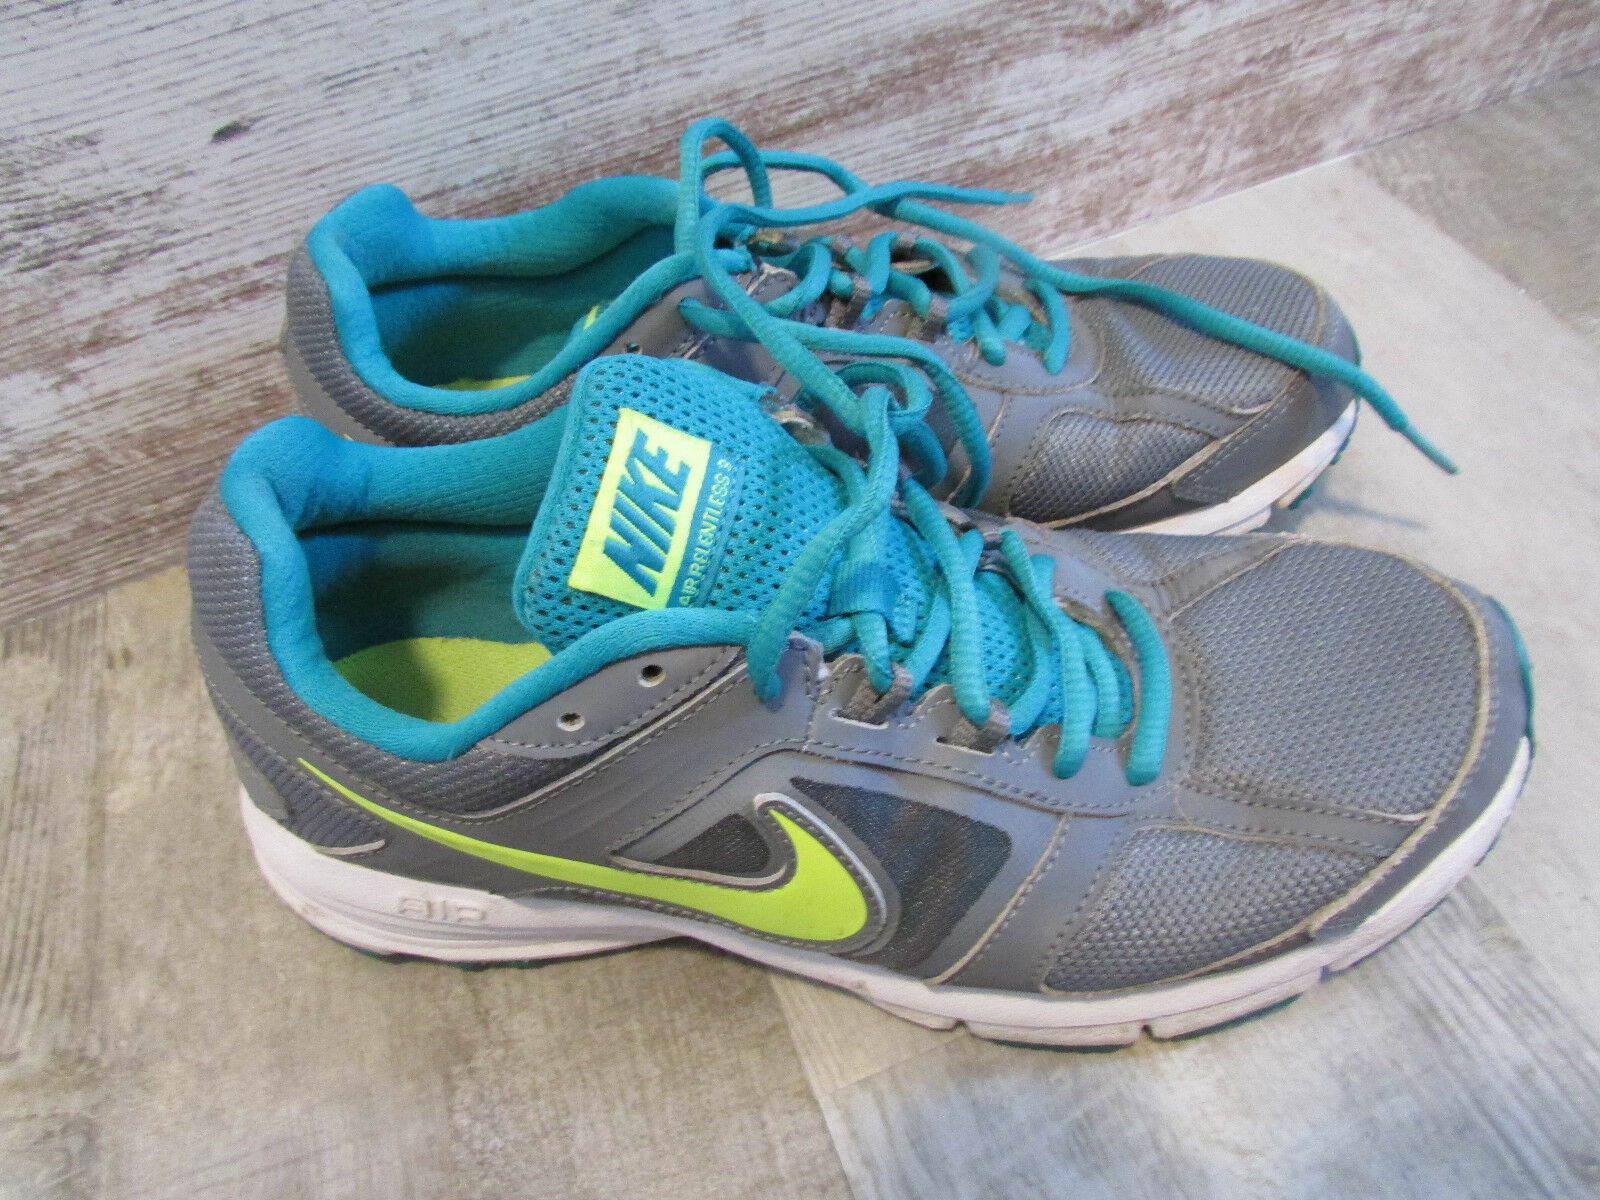 NIKE RELENTLESS ATHLETIC SNEAKER SHOES WOMENS 9.5 RUNNING FREE SHIP Special limited time